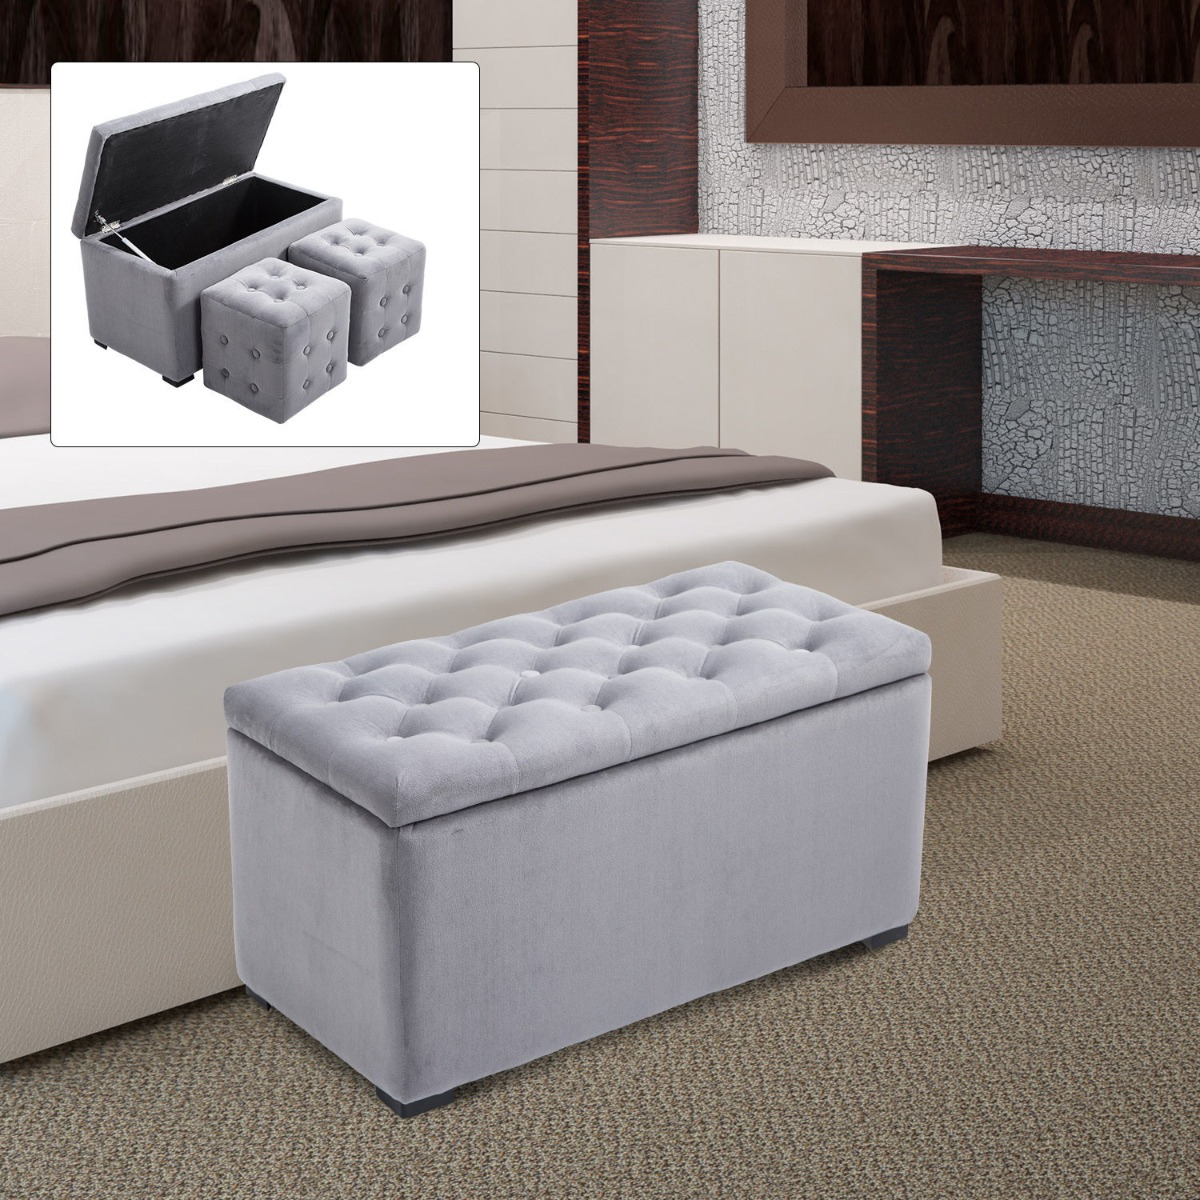 Awesome Homcom 3 Piece Microfiber Tufted Storage Bench And Nesting Ottoman Set Grey Uwap Interior Chair Design Uwaporg